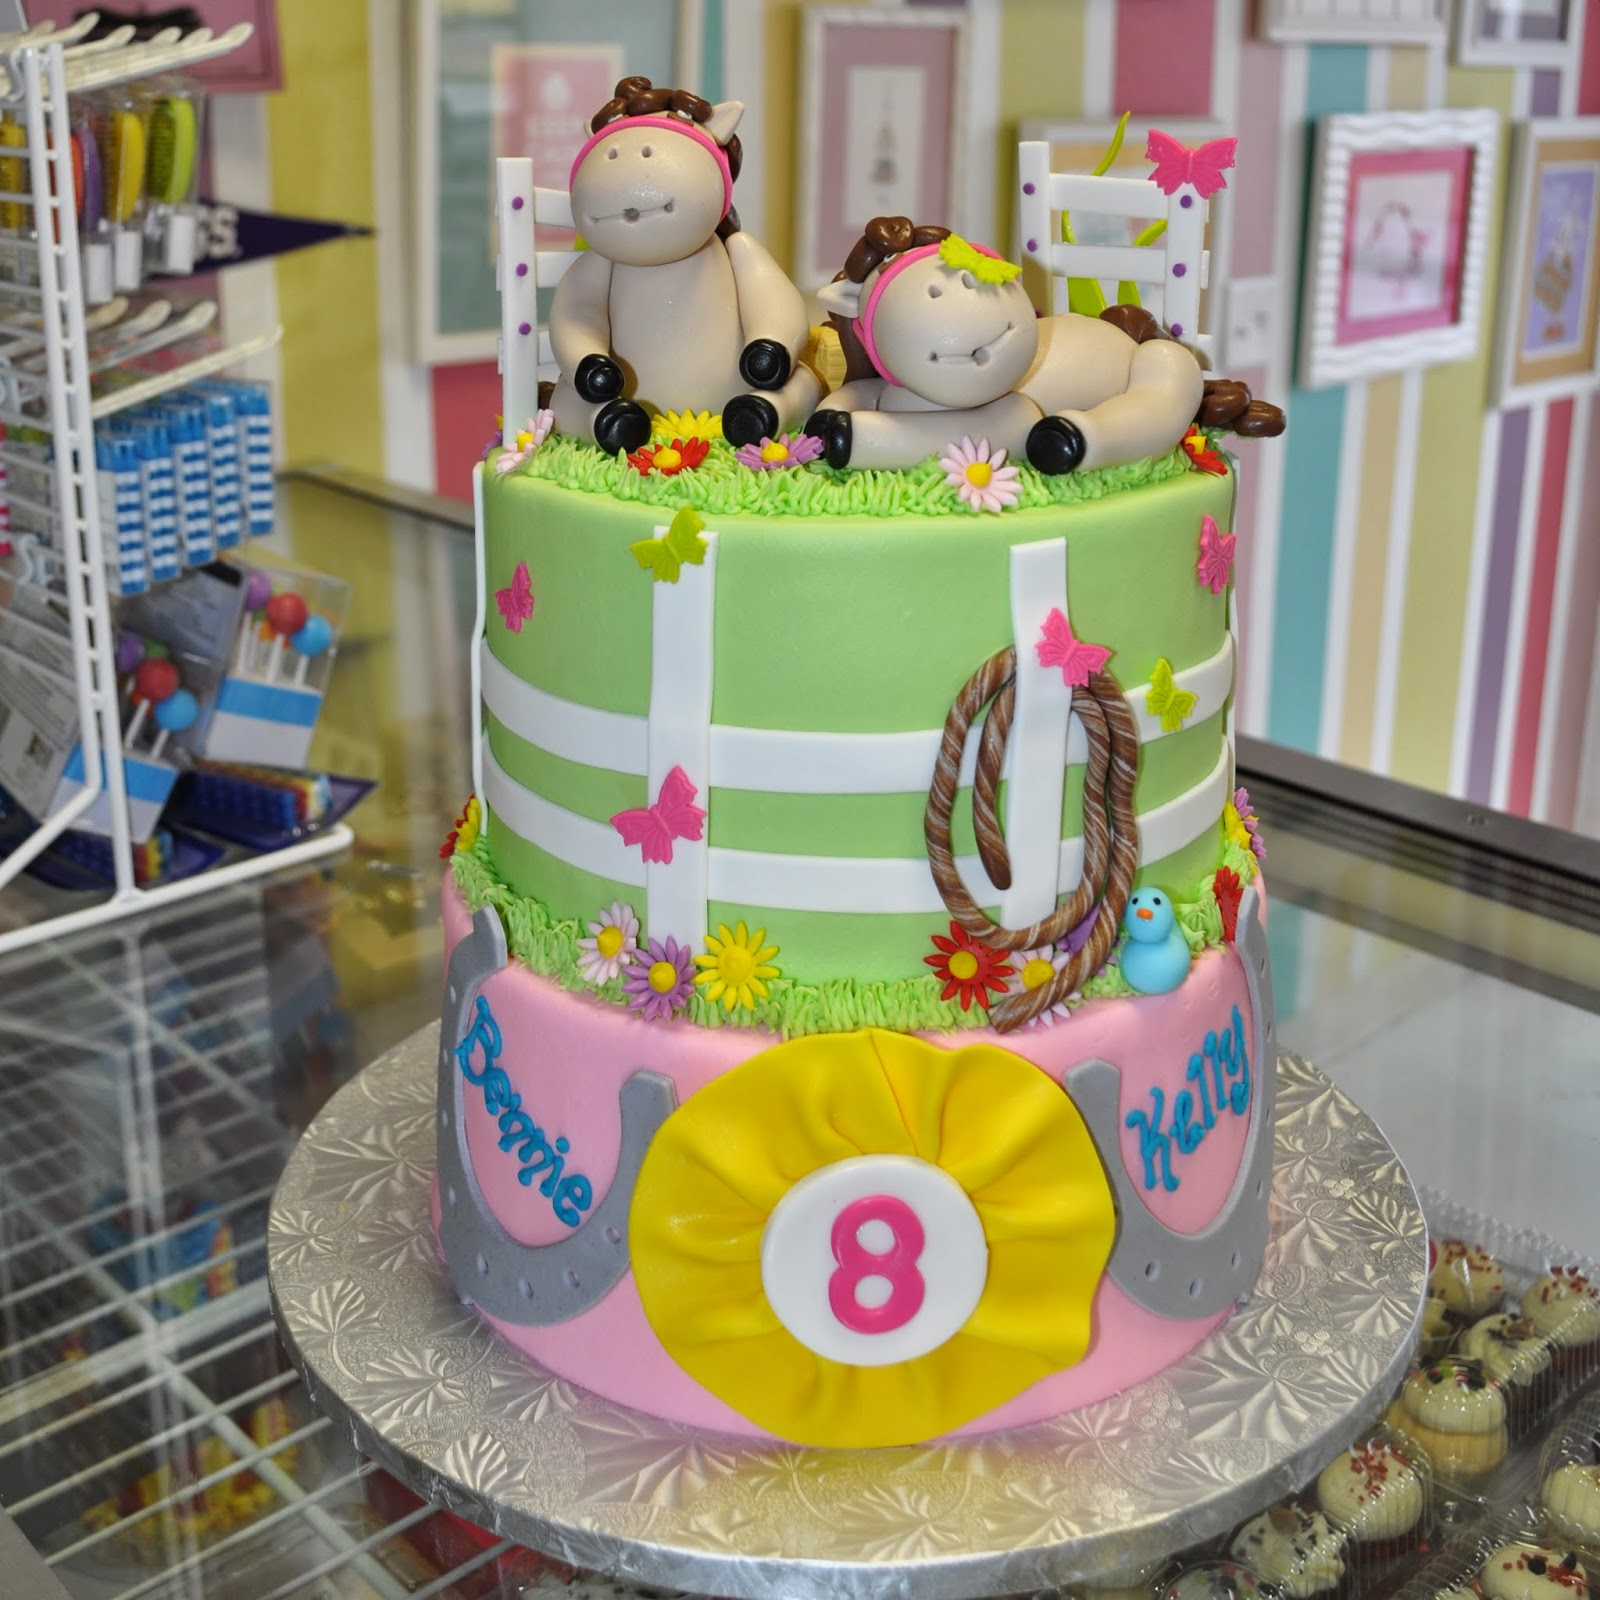 Owner And Cake Artist : Leah s Sweet Treats: Custom Cakes, Sprinkle Cakes, Wedding ...